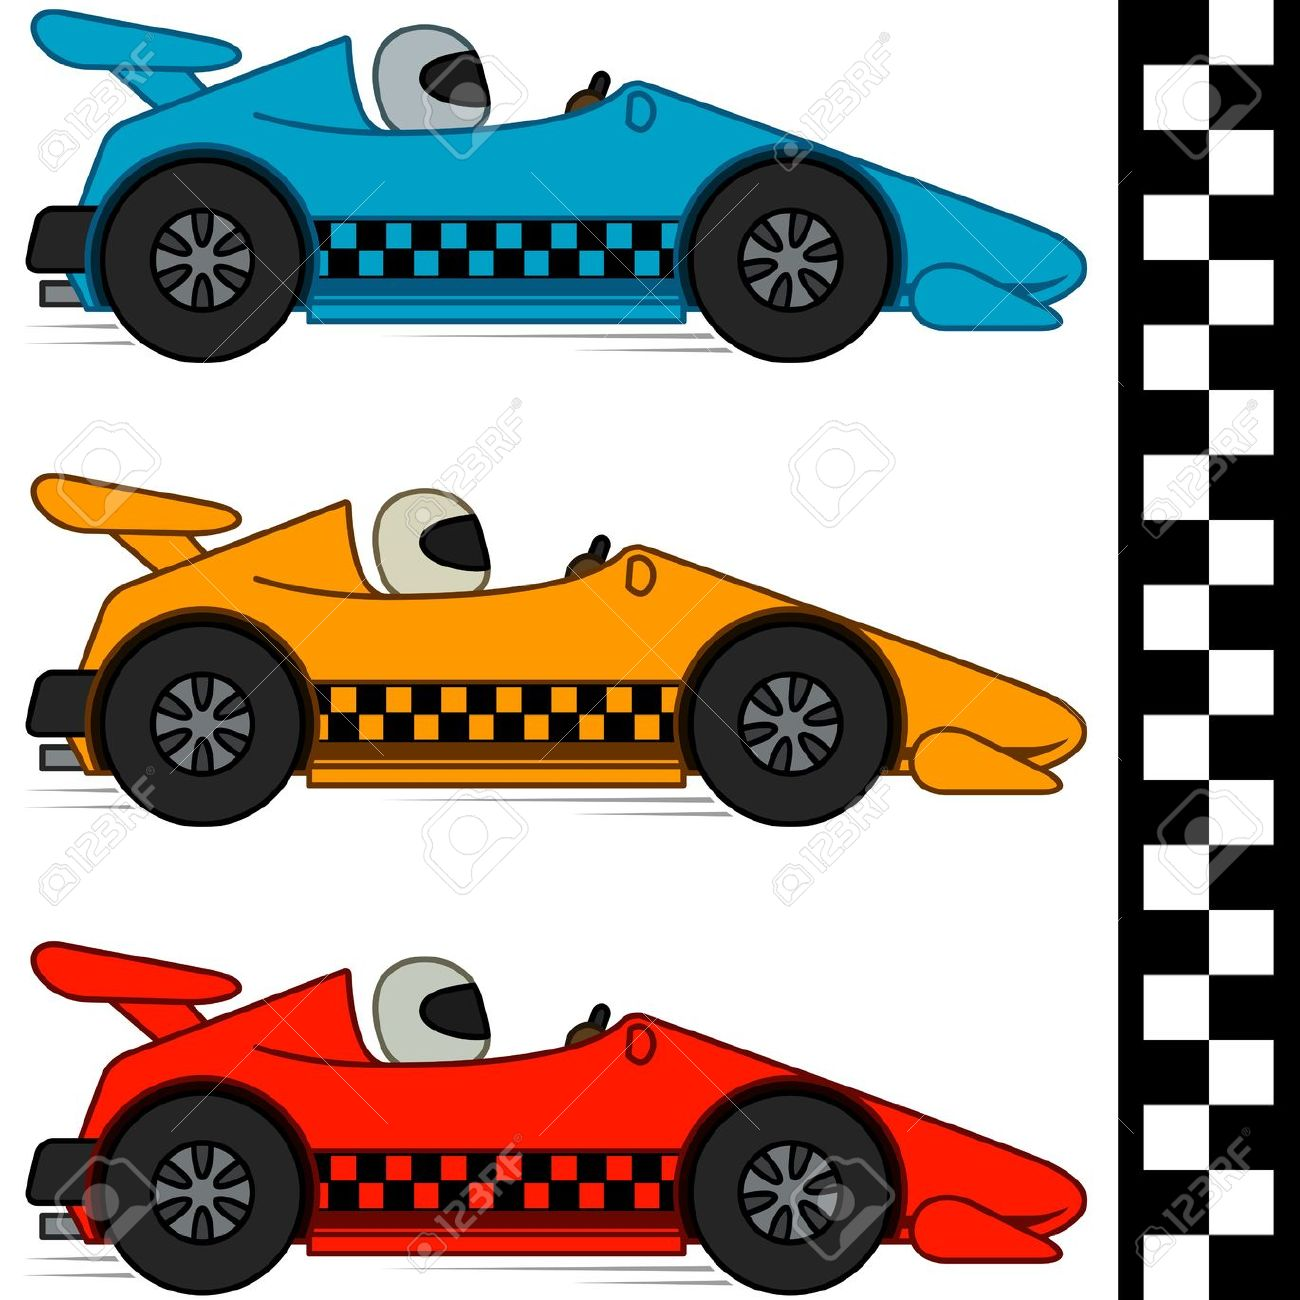 Race clipart auto racing. Nascar free download best